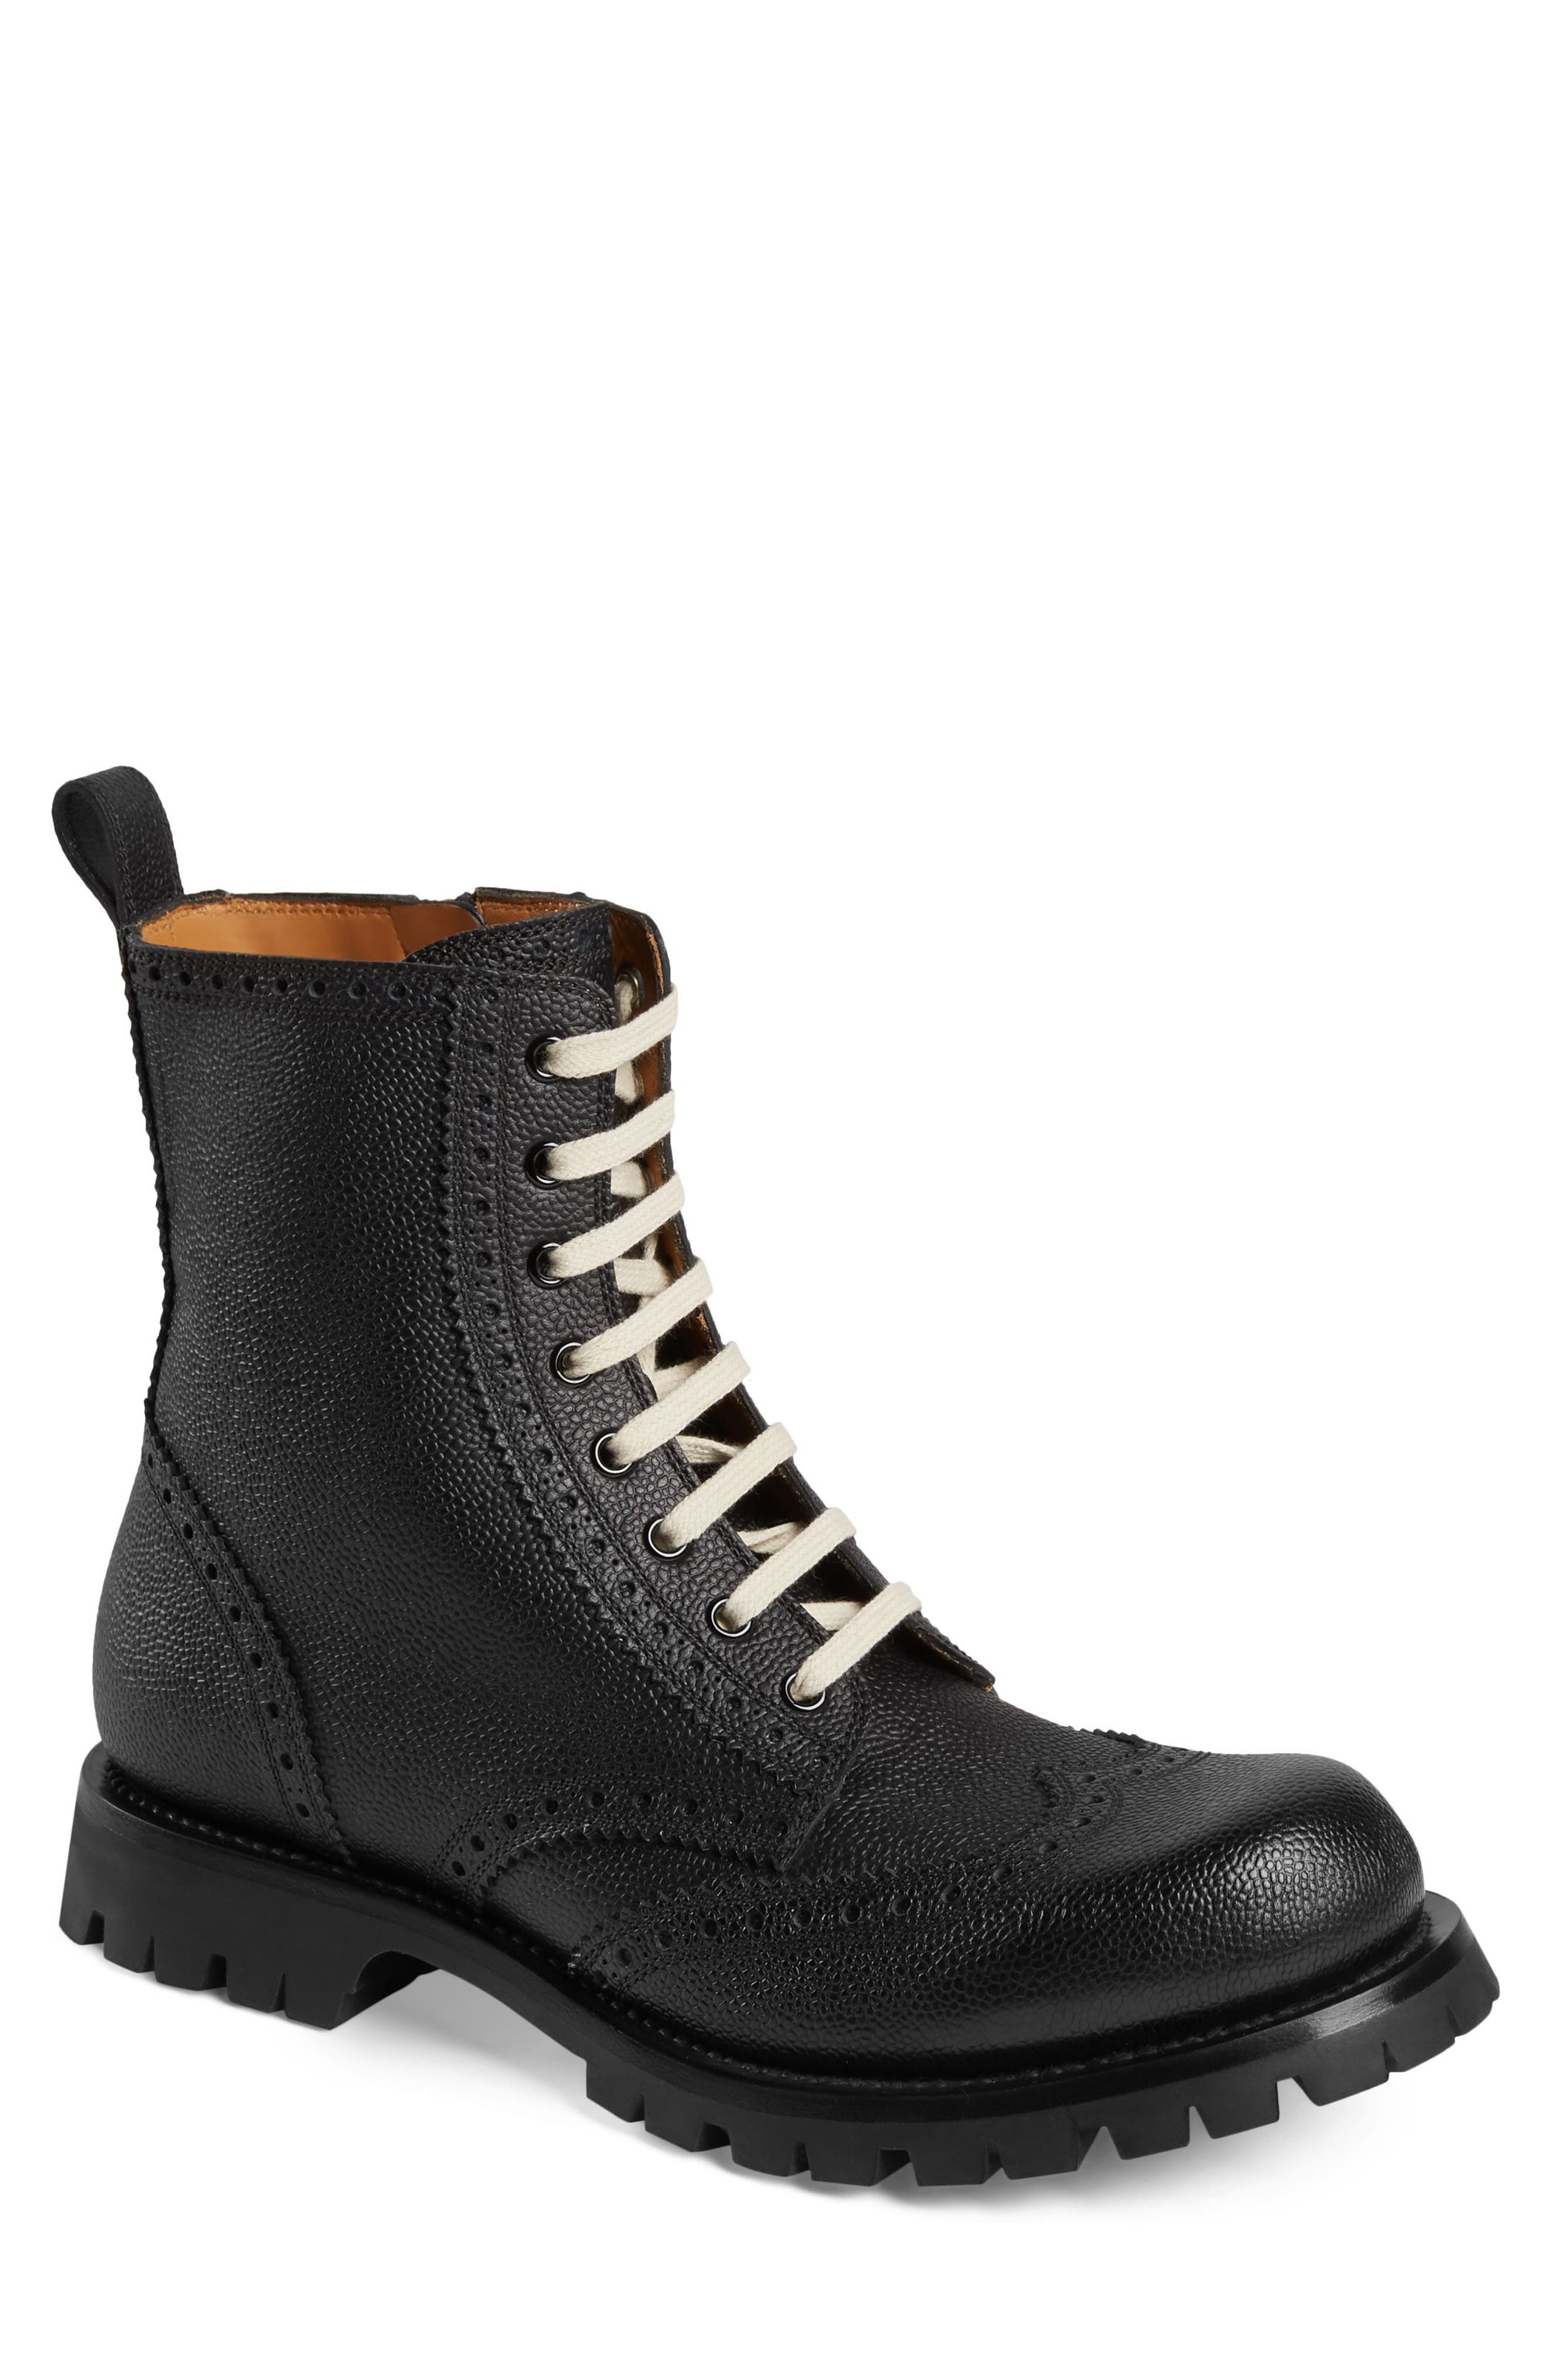 Gucci Brogue Boot, Black